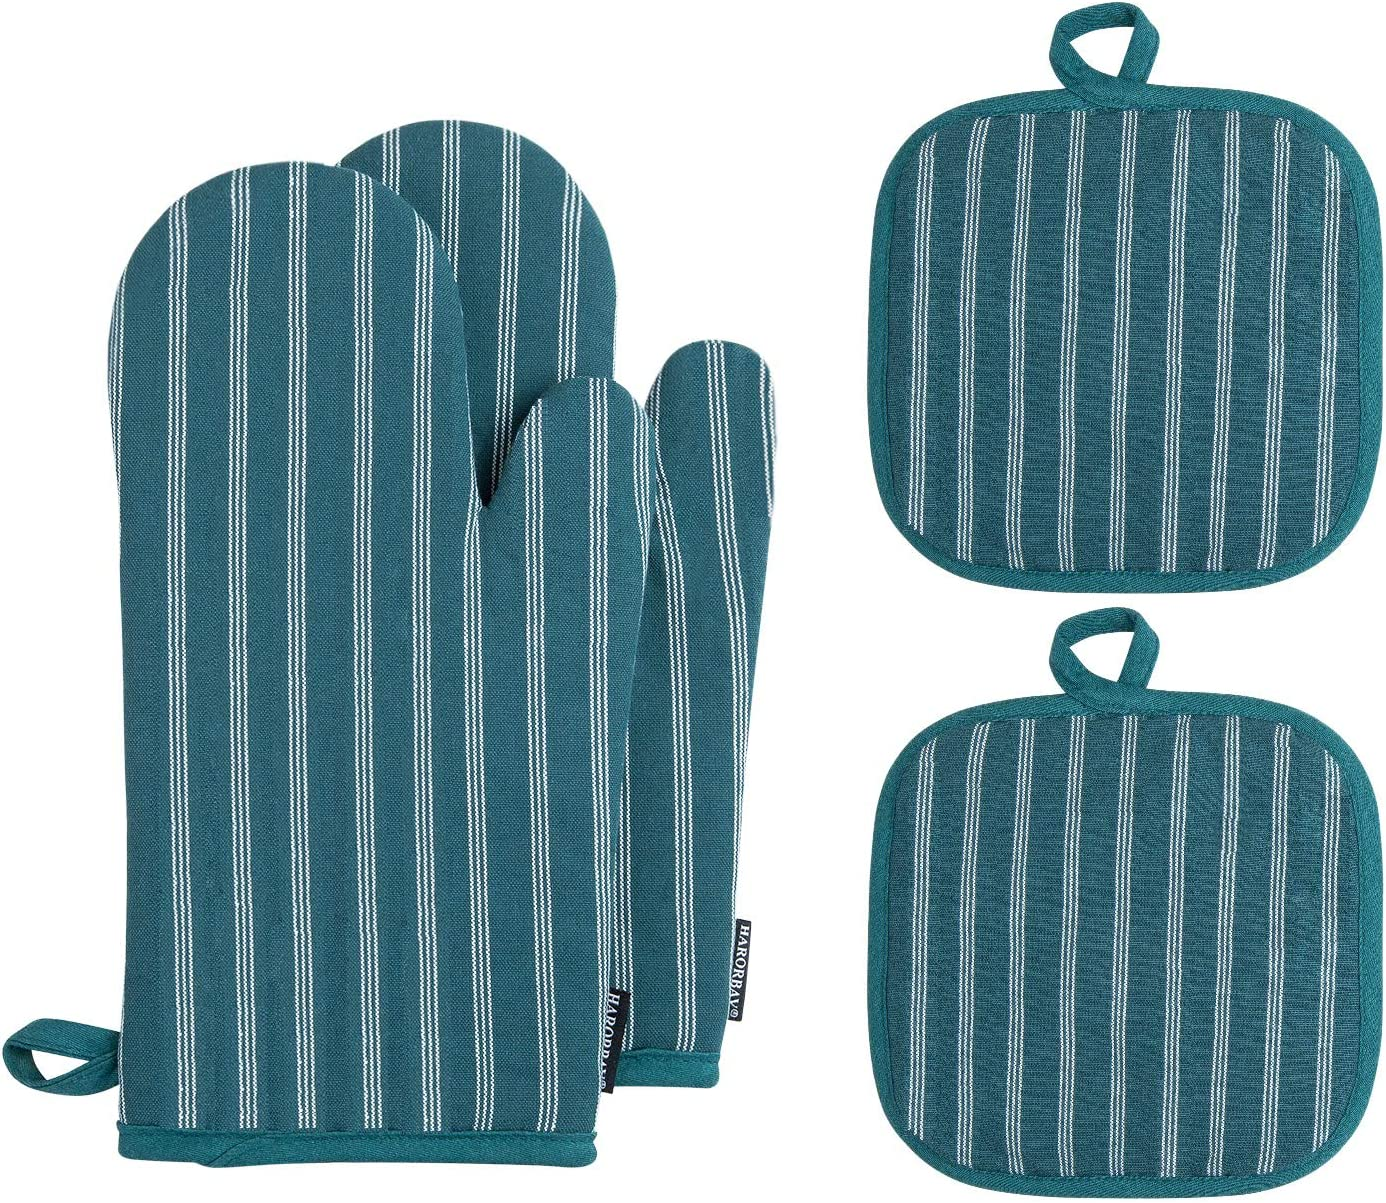 HARORBAY Cotton Oven Mitts and Pot Holders, Heat Resistant Kitchen Oven Gloves, Non-Slip Washable Hot Pads for Baking Cooking (Set of 4, Blue)